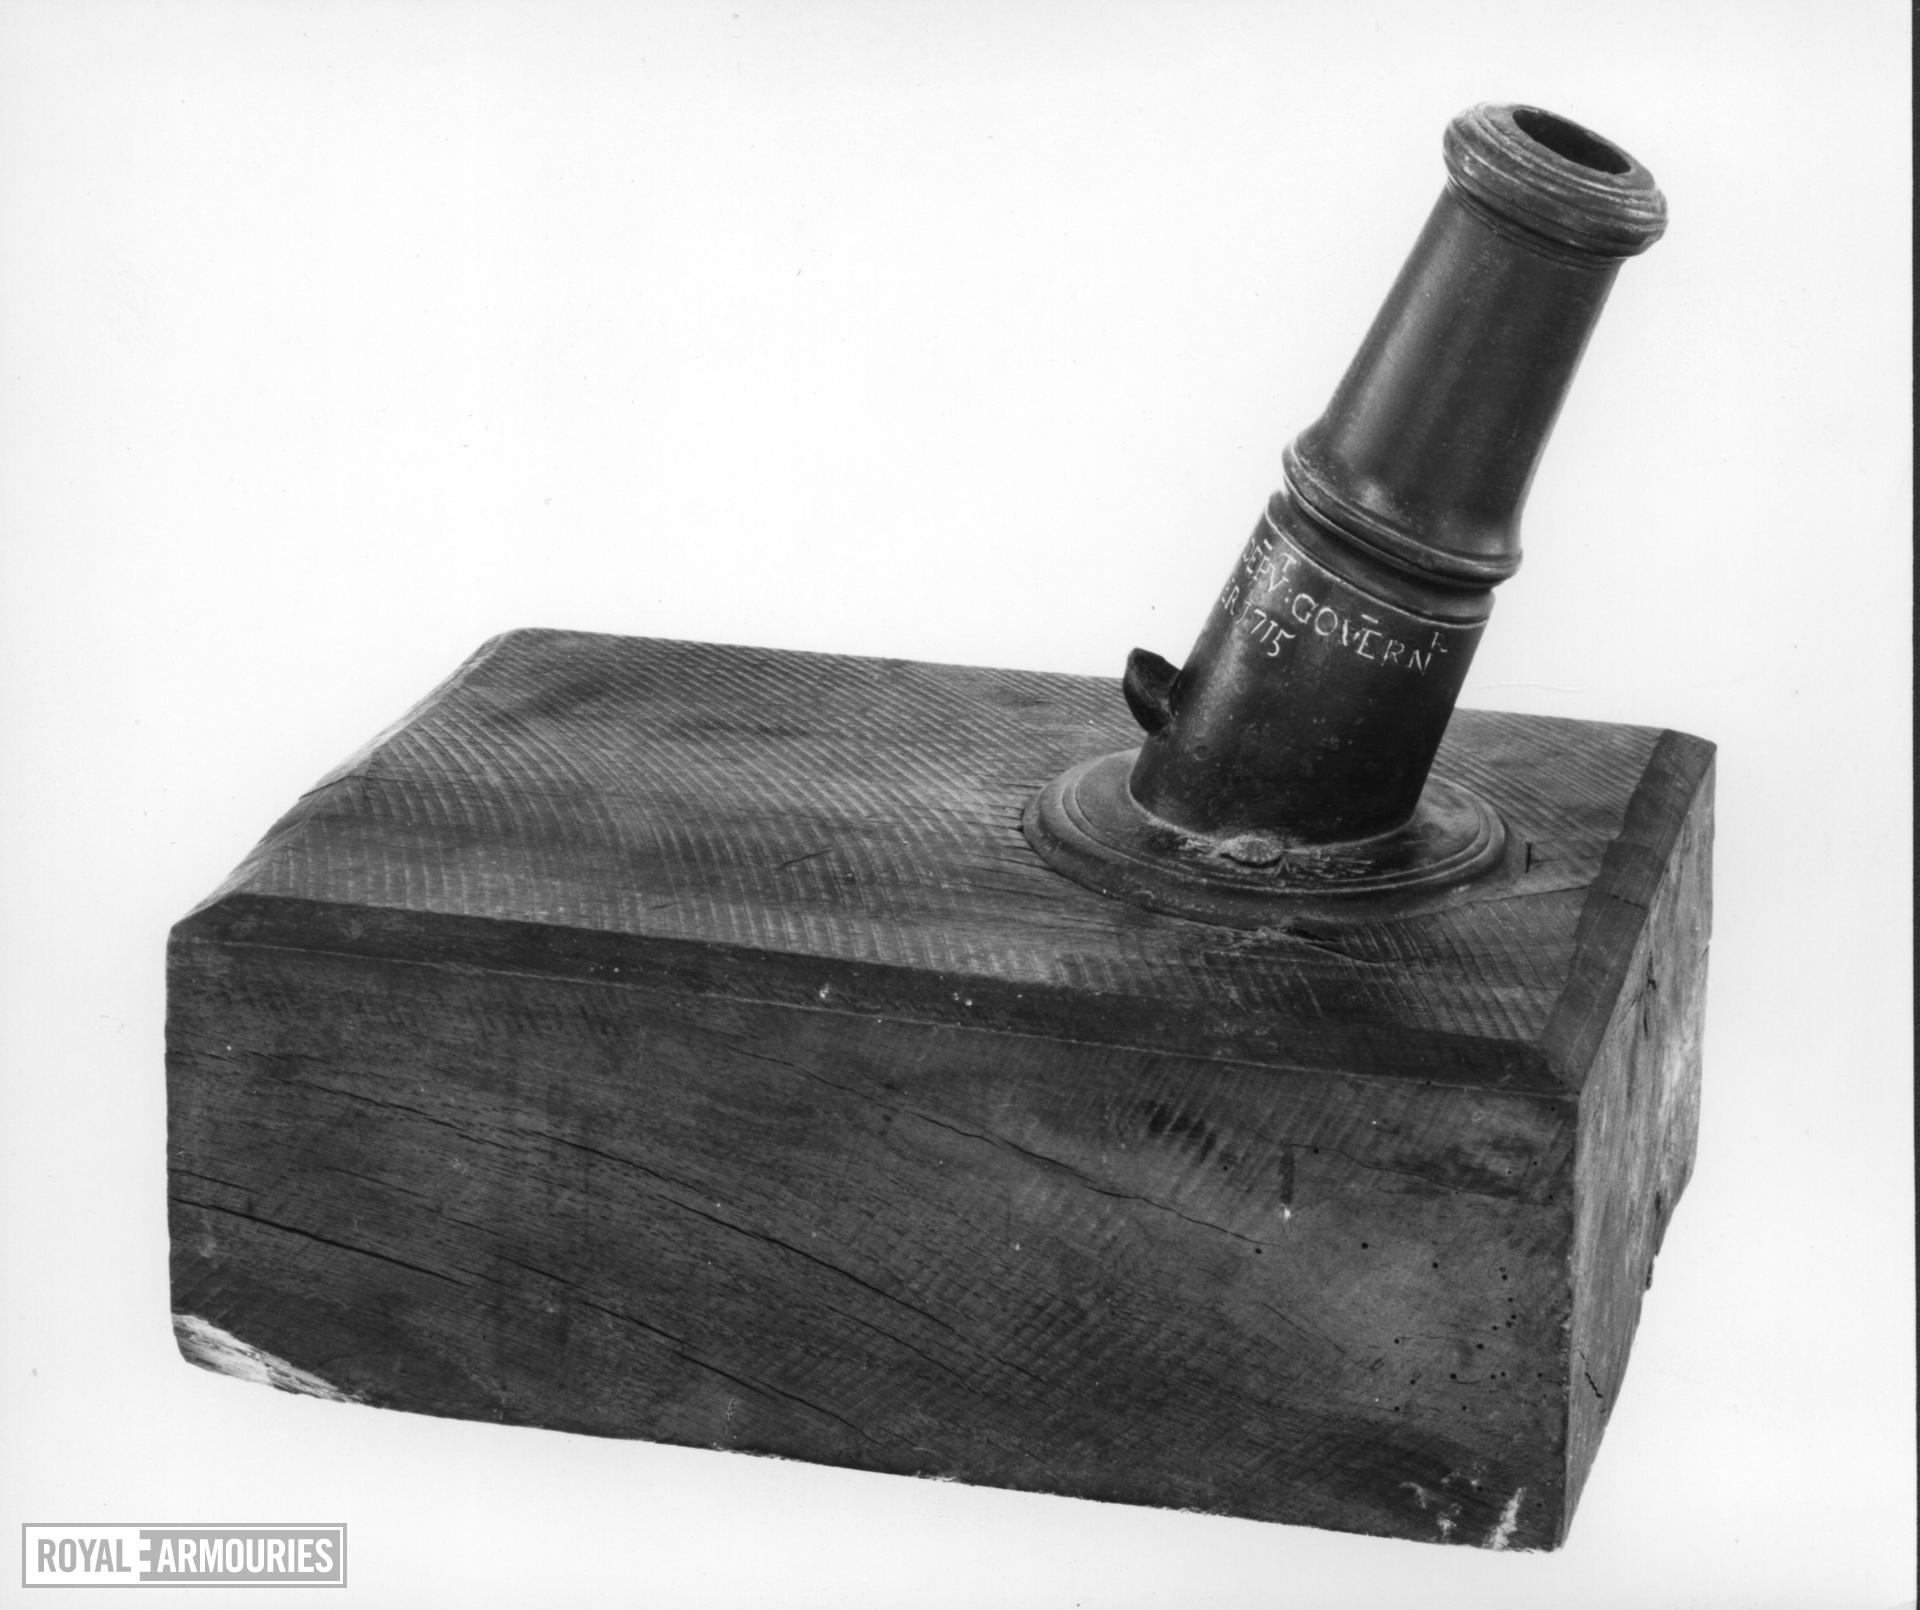 1.3 in mortar and bed Made of bronze Cast for R Doyle, deputy governor of the Tower of London 1715 Cf.XIX.288 virtually a pair